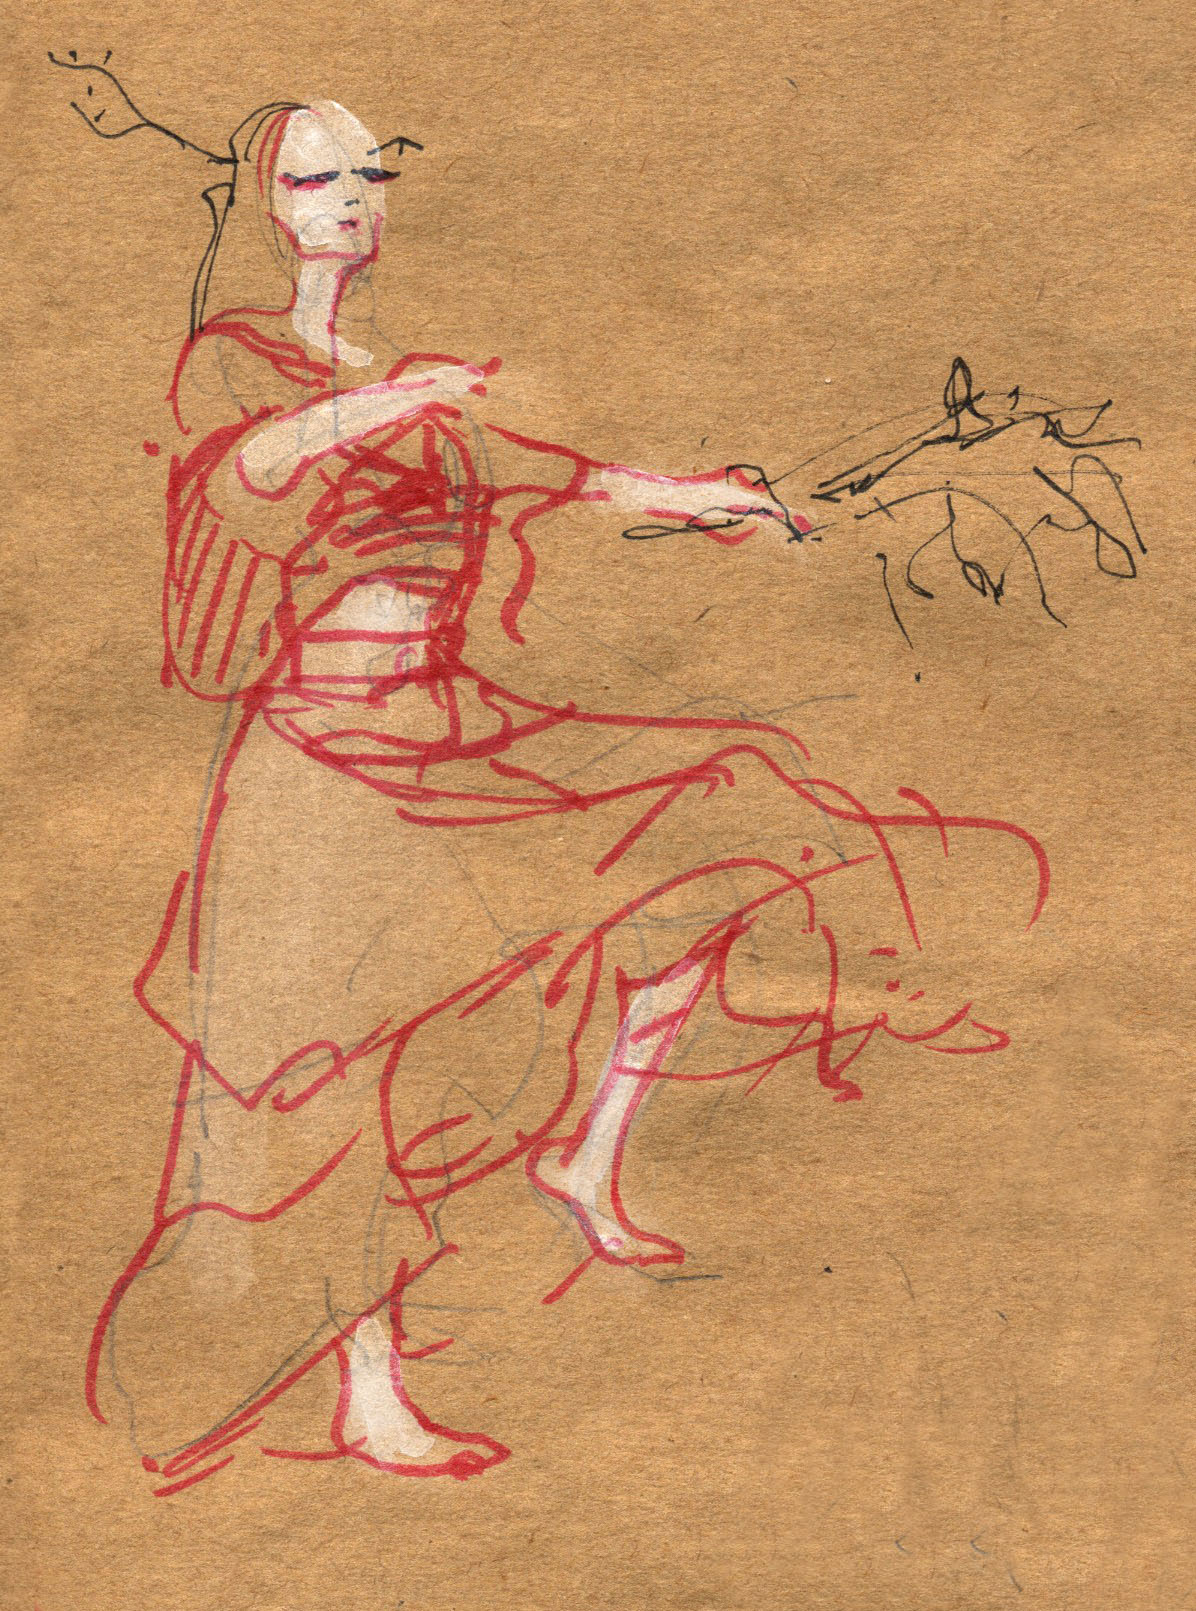 photo: Butoh at Dr. Sketchy's. Many more drawings coming up.